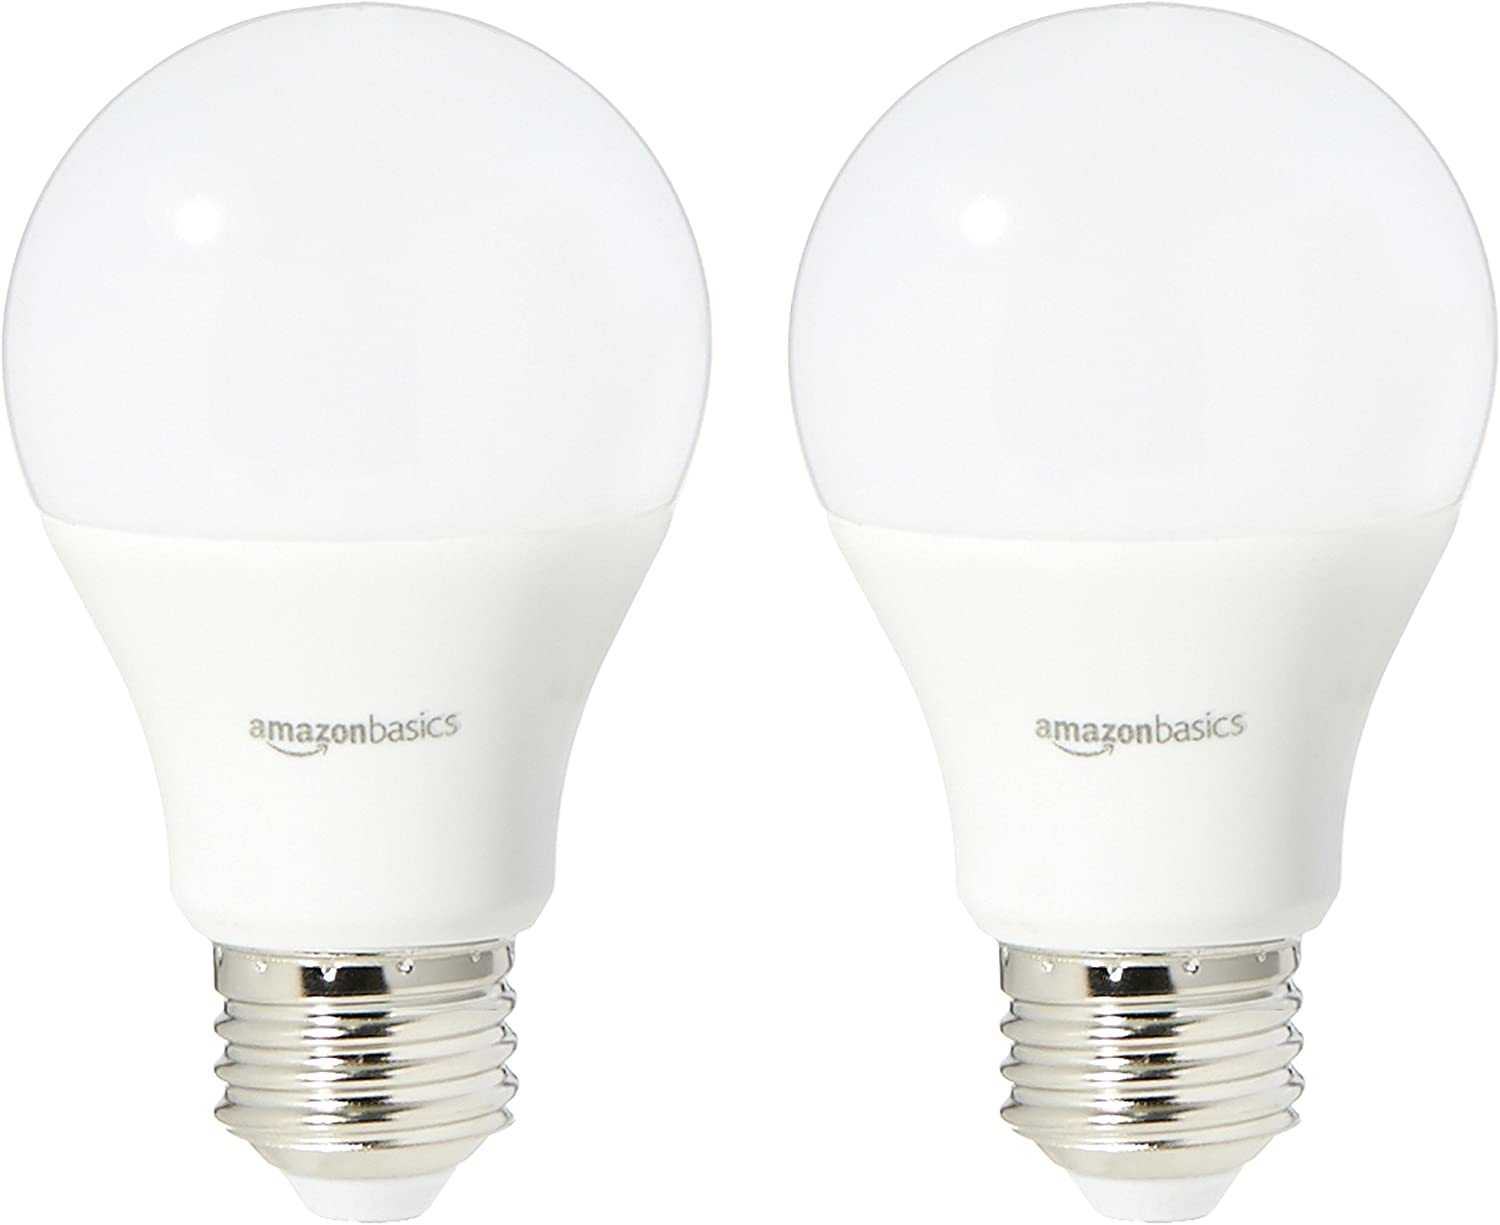 AmazonBasics 75 Watt Equivalent, Daylight, Dimmable, A19 LED Light Bulb | 2-Pack